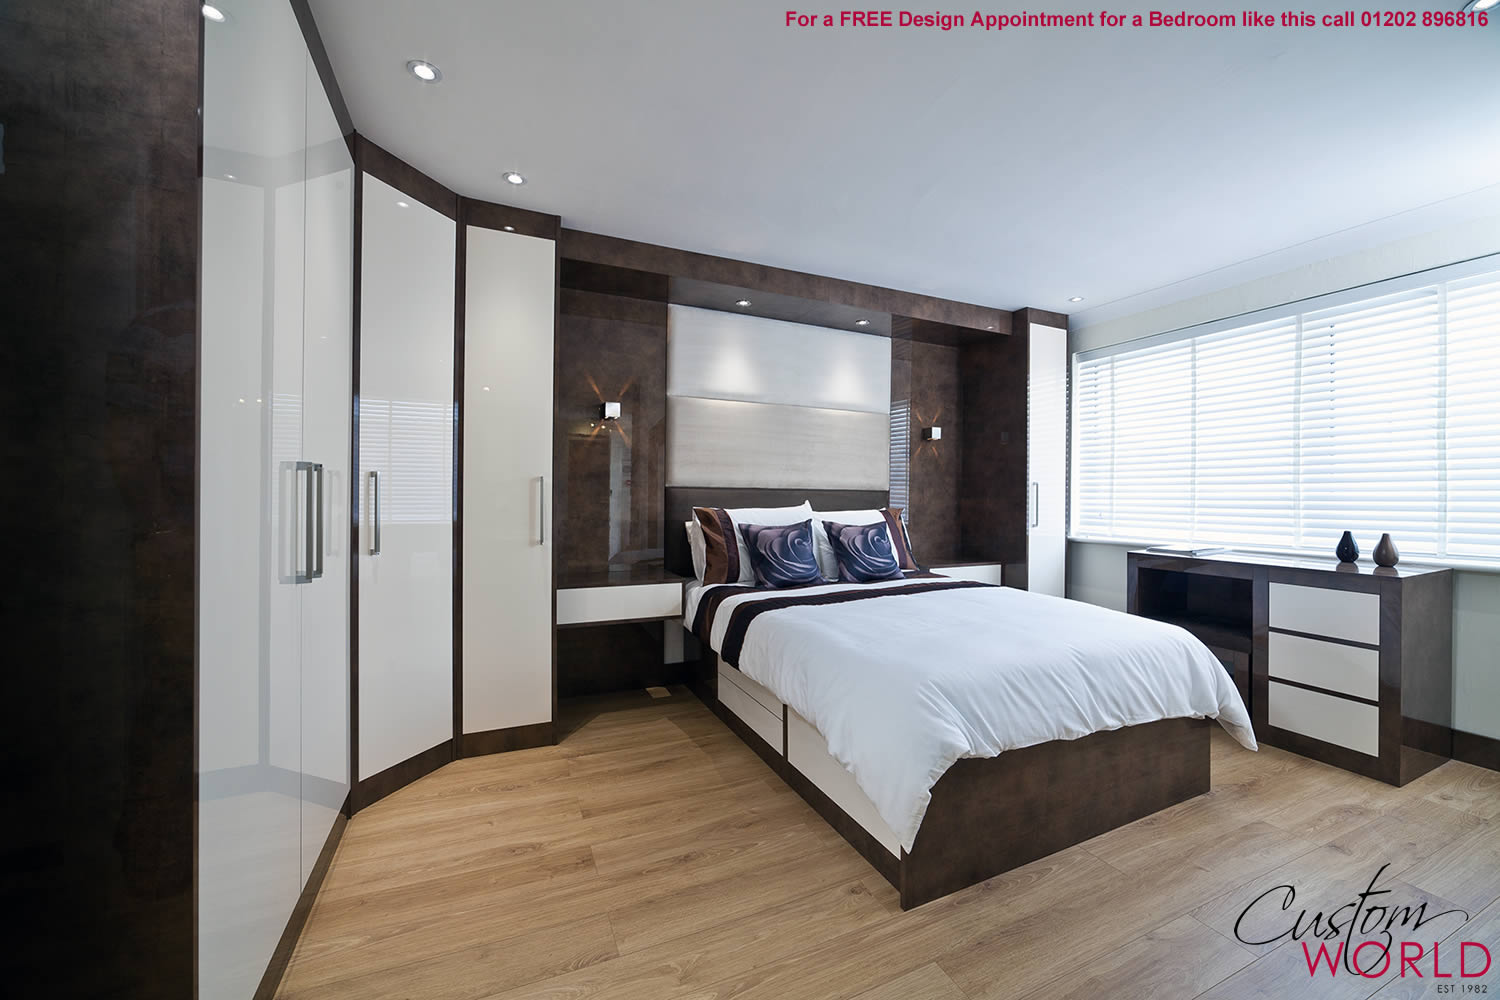 High Quality Bespoke Storage Solutions Fitted Bedroom Wardrobe Storage Facilities Awesome Design